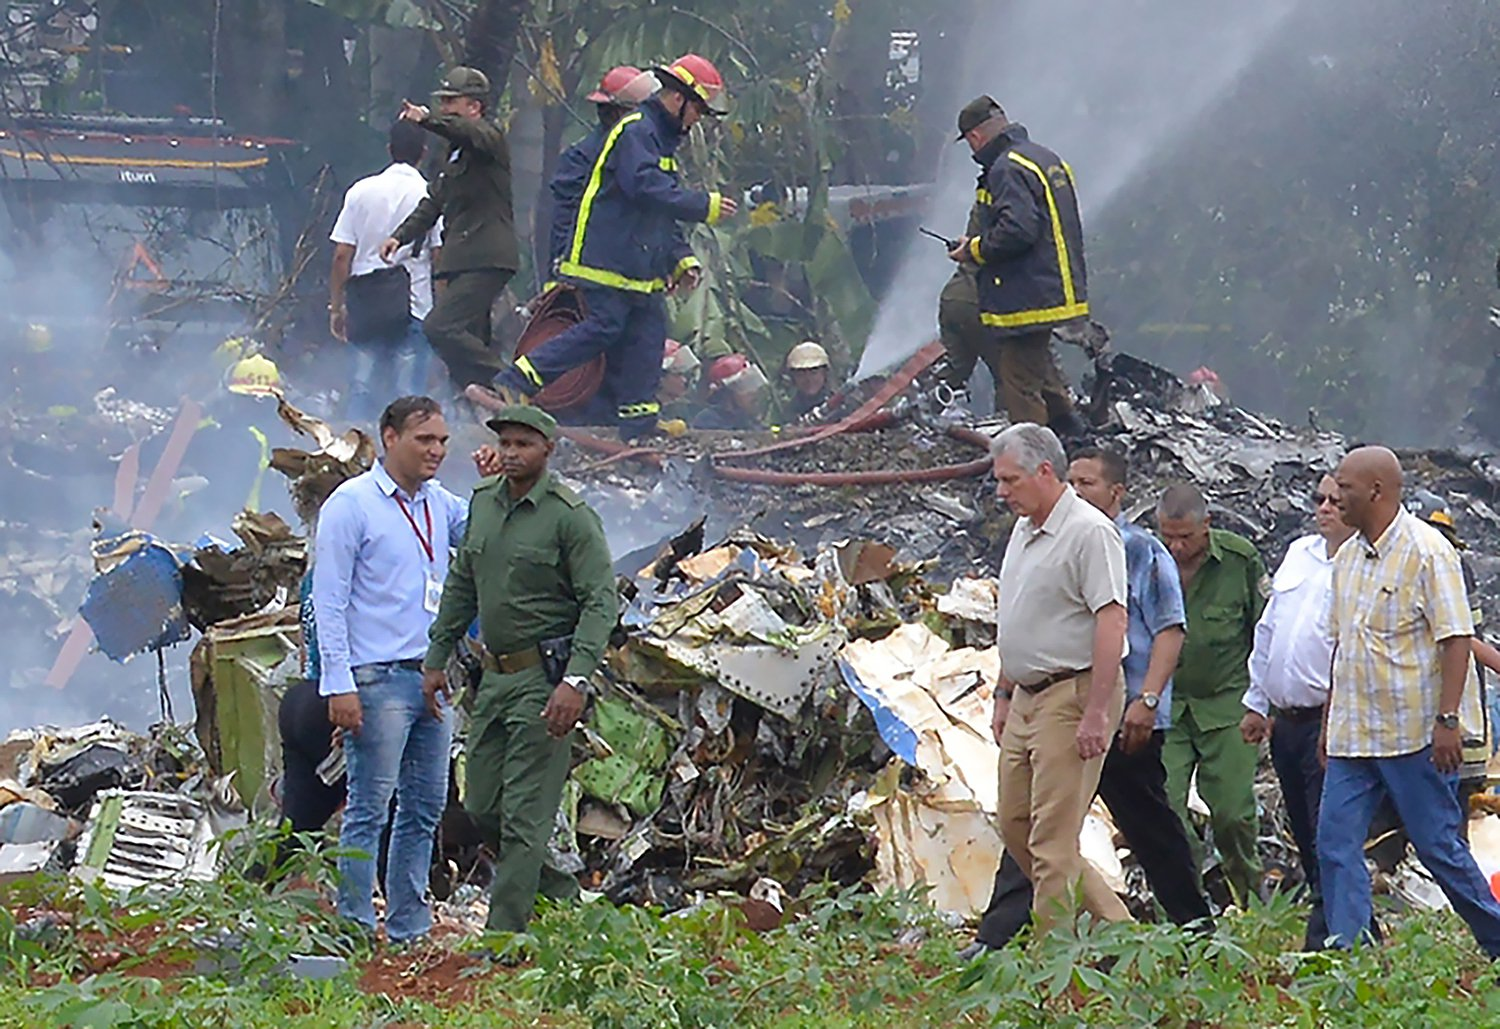 Cuban President Miguel Diaz-Canel (2-R, in khaki) is pictured at the site of the accident after a Cubana de Aviacion aircraft crashed after taking off from Havana